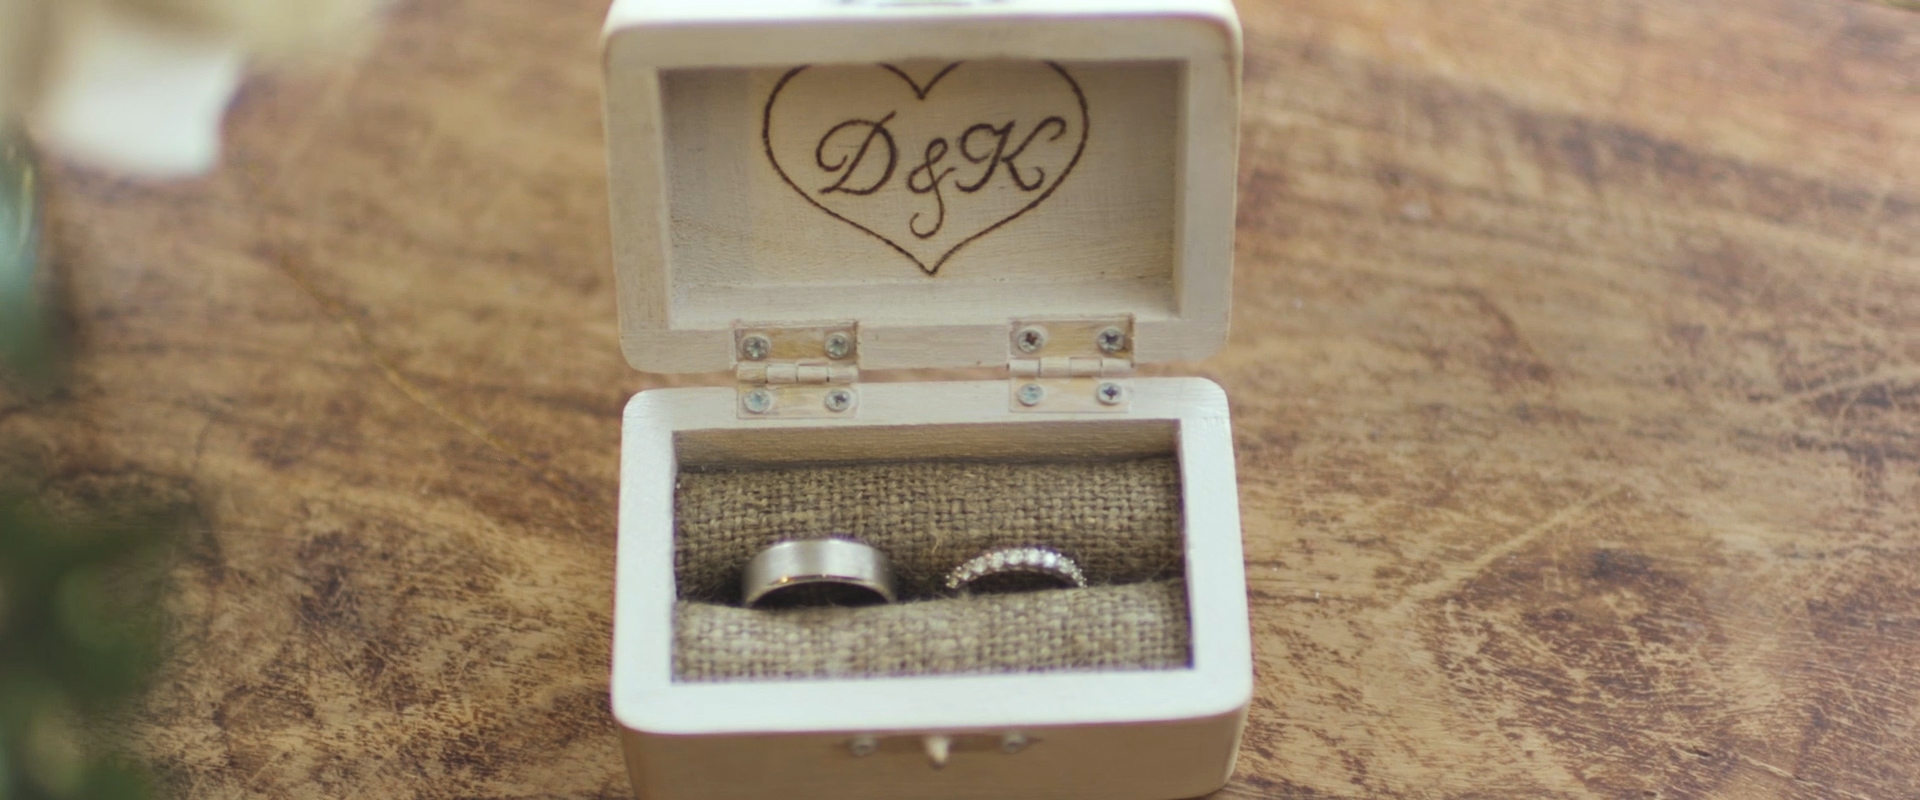 An image of a couples wedding rings on the day of their wedding; taken from a Toronto Wedding Video